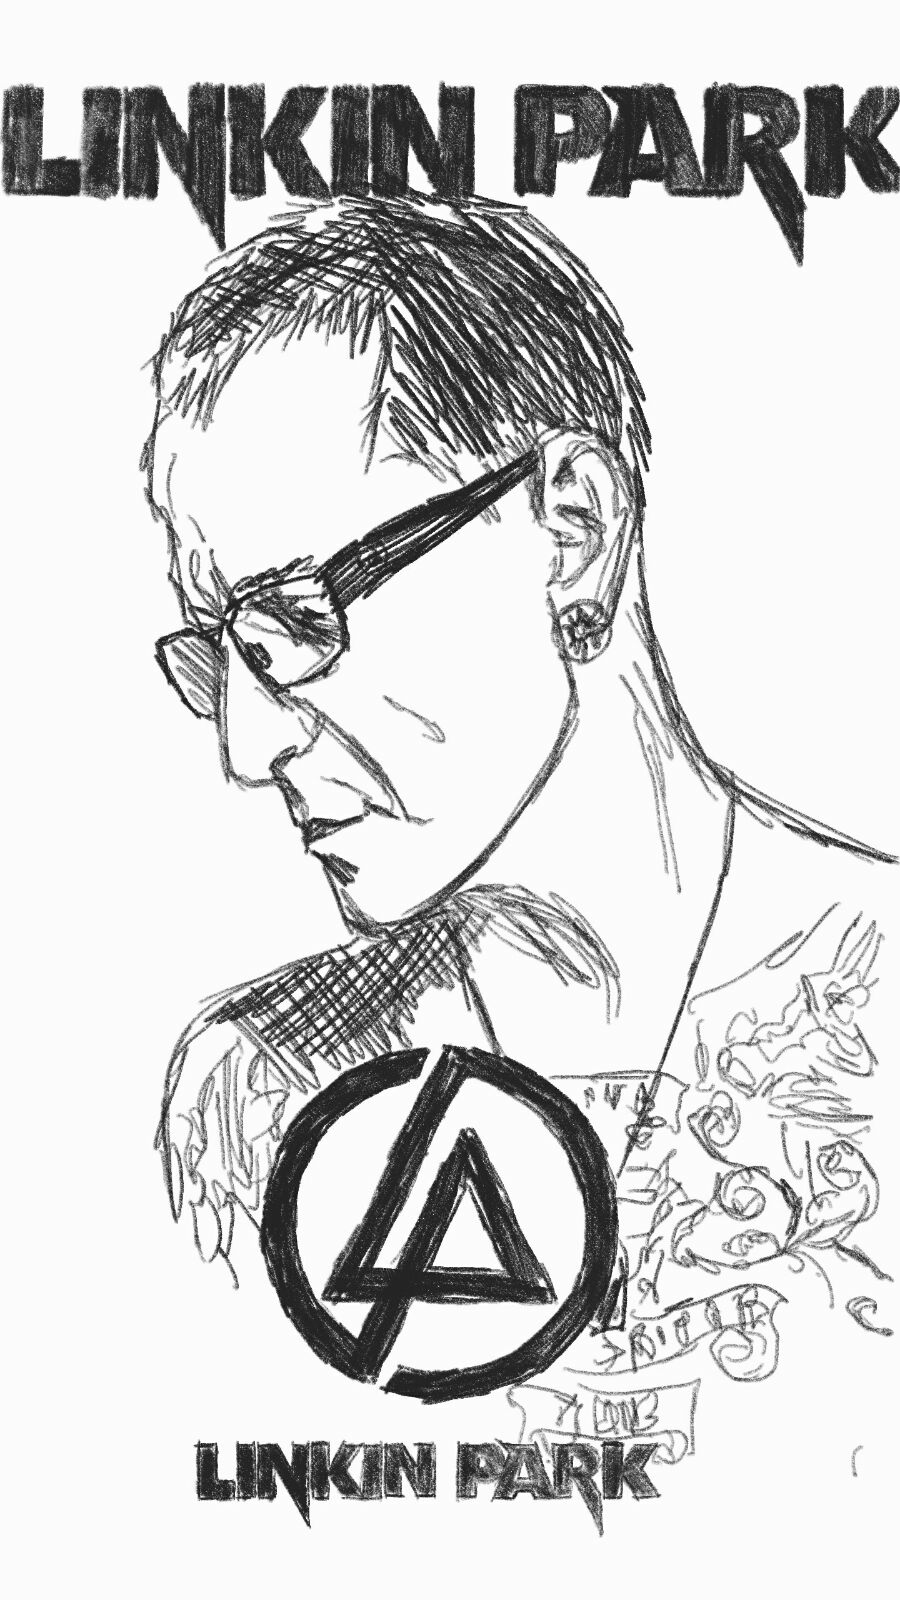 900x1600 My Chester Bennington Memorial Drawing. Rip Chester. Linkinpark